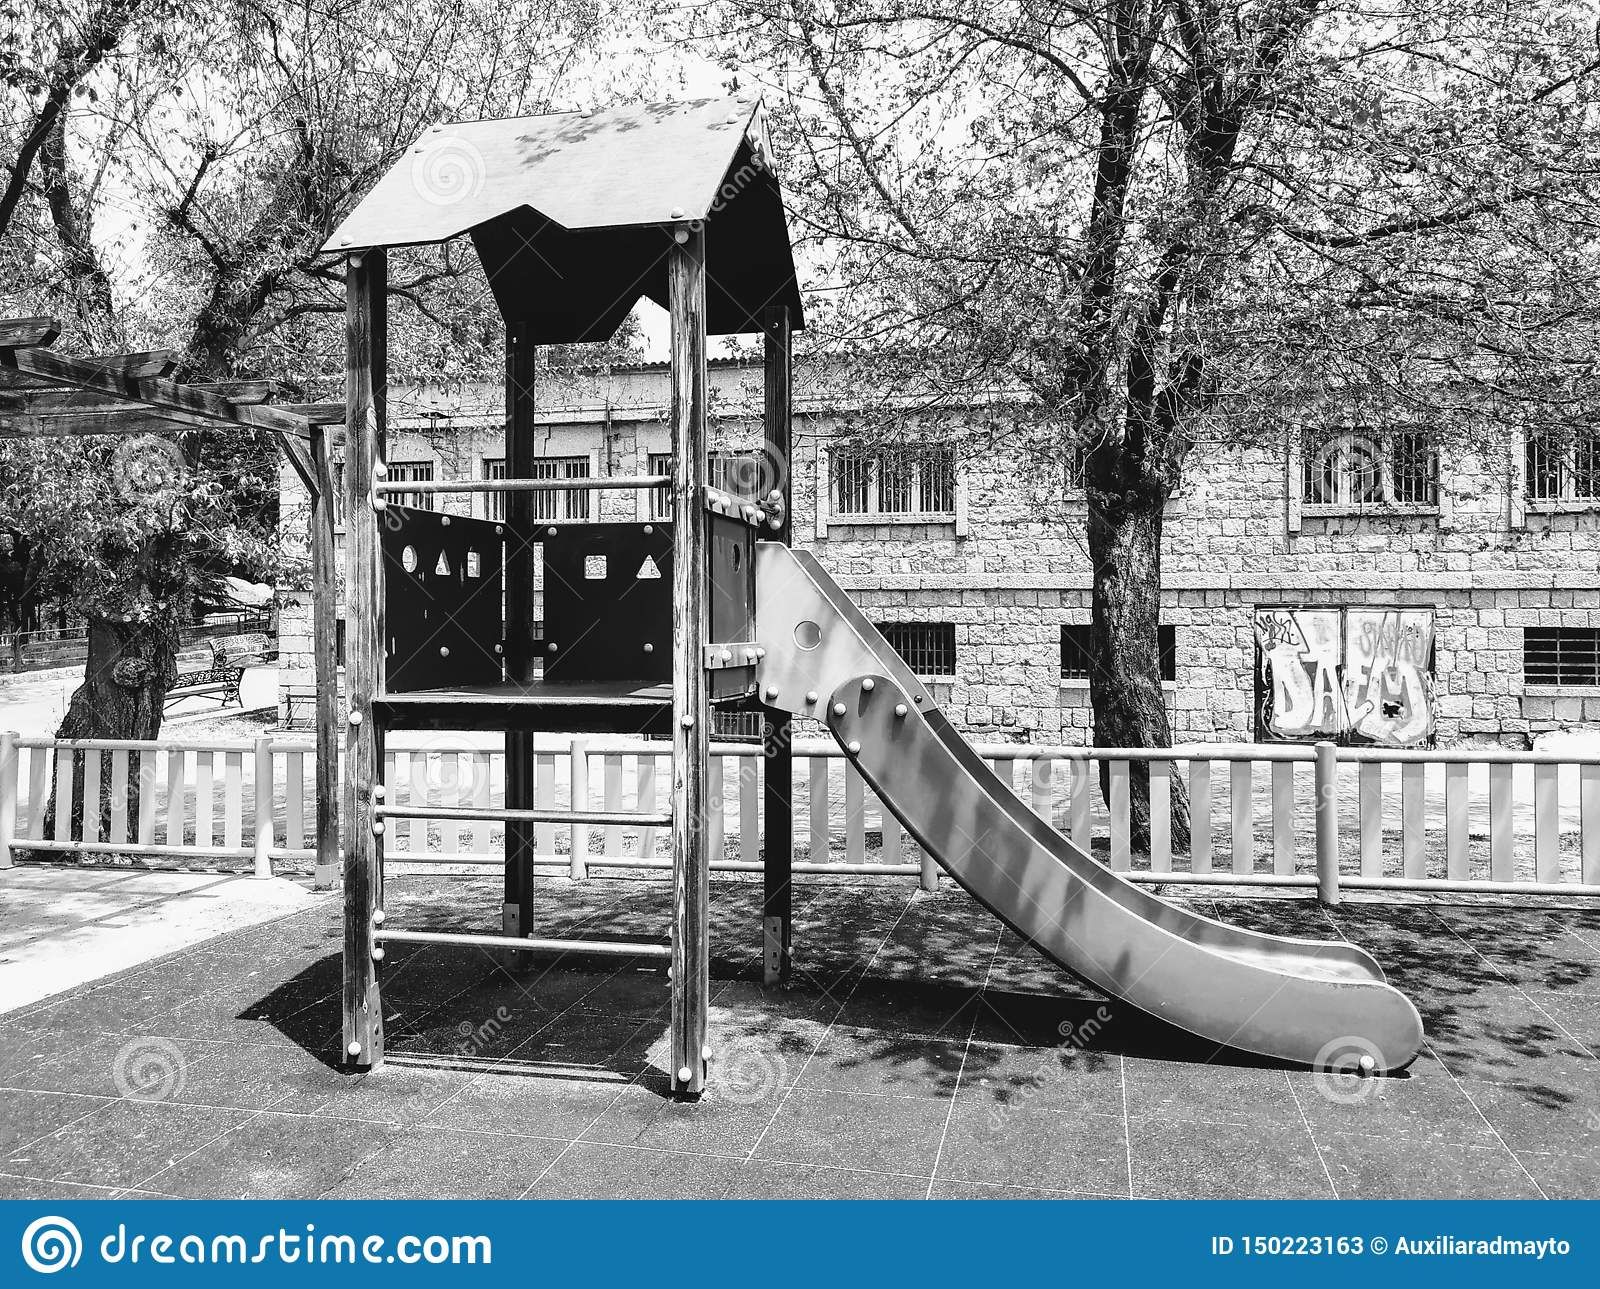 Landscape in black and white. A slide in a park.